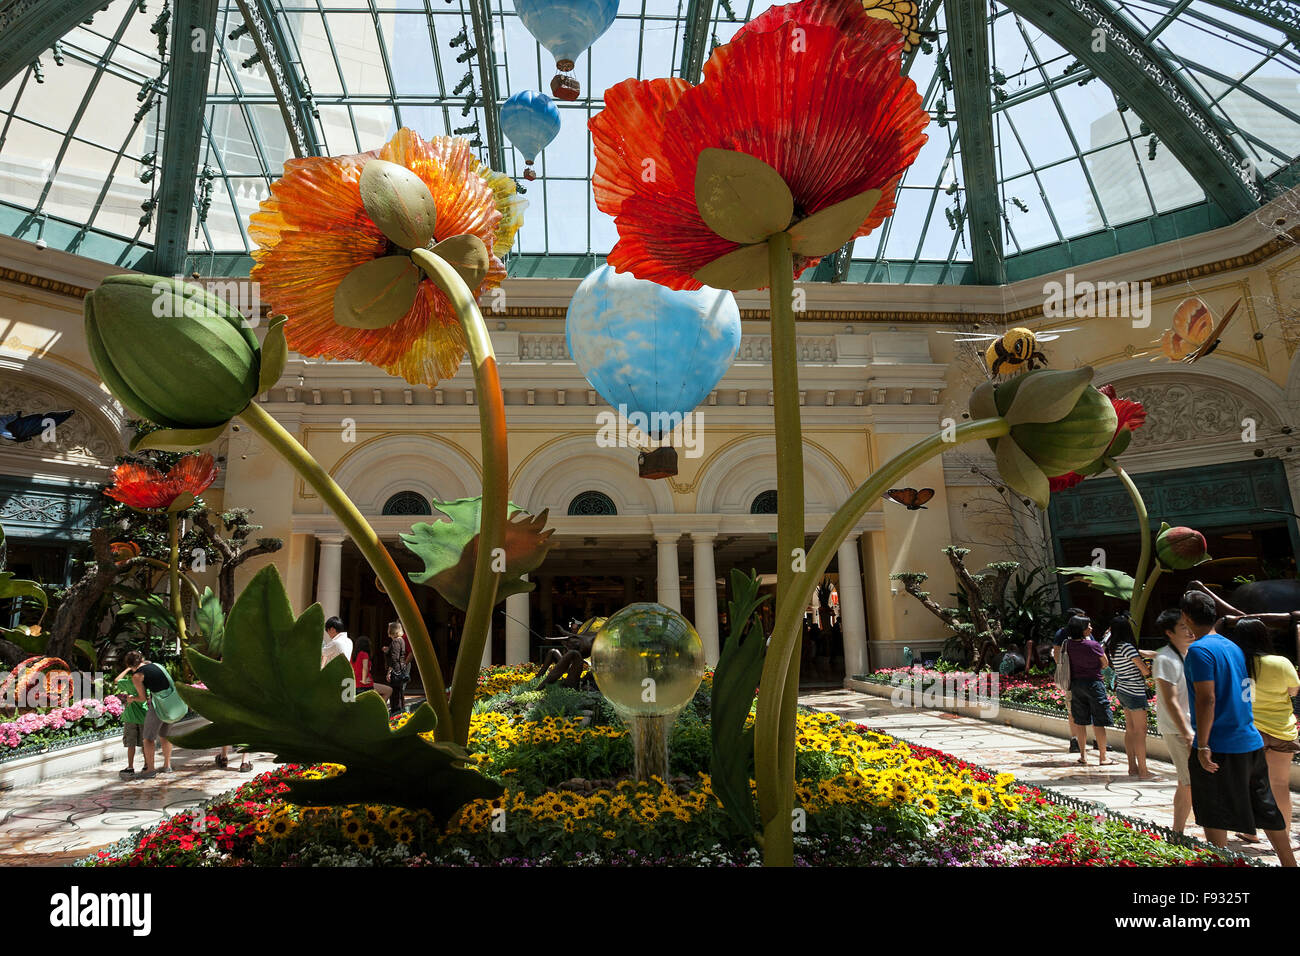 Exhibits in botanical garden conservatory, Bellagio Hotel, Las Vegas ...